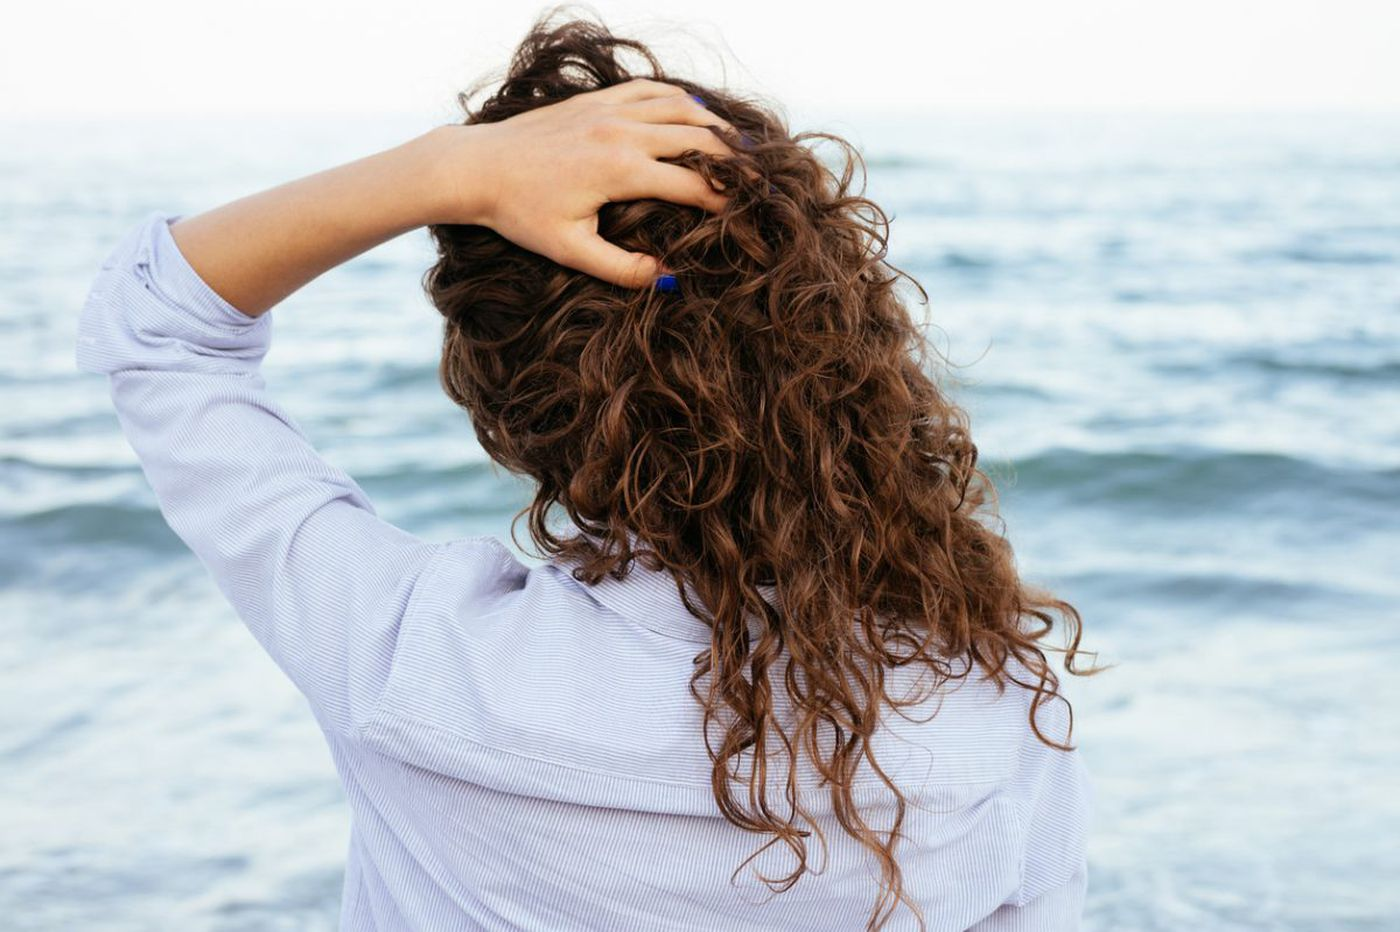 Finally accepting myself for who I am, haglike curls and all | Lisa Scottoline